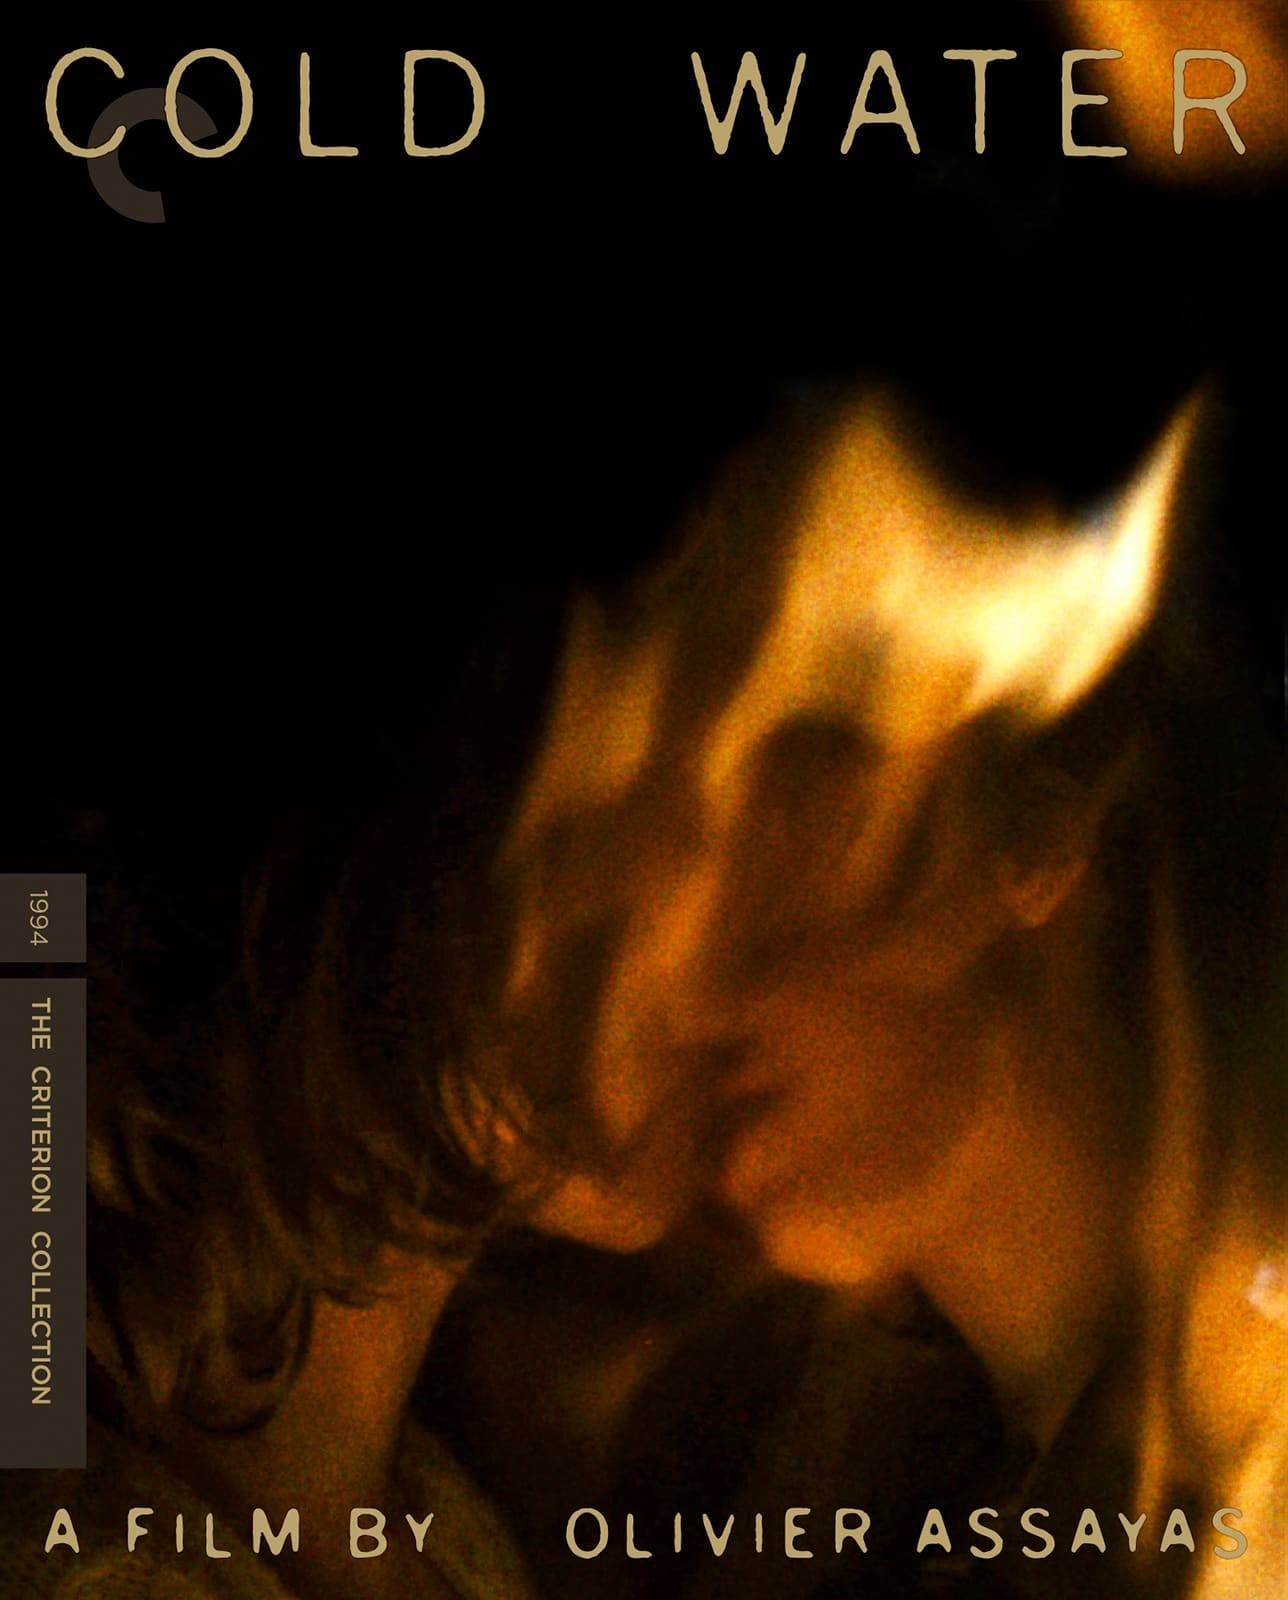 Cold Water (The Criterion Collection)(Blu-ray)(Region A)